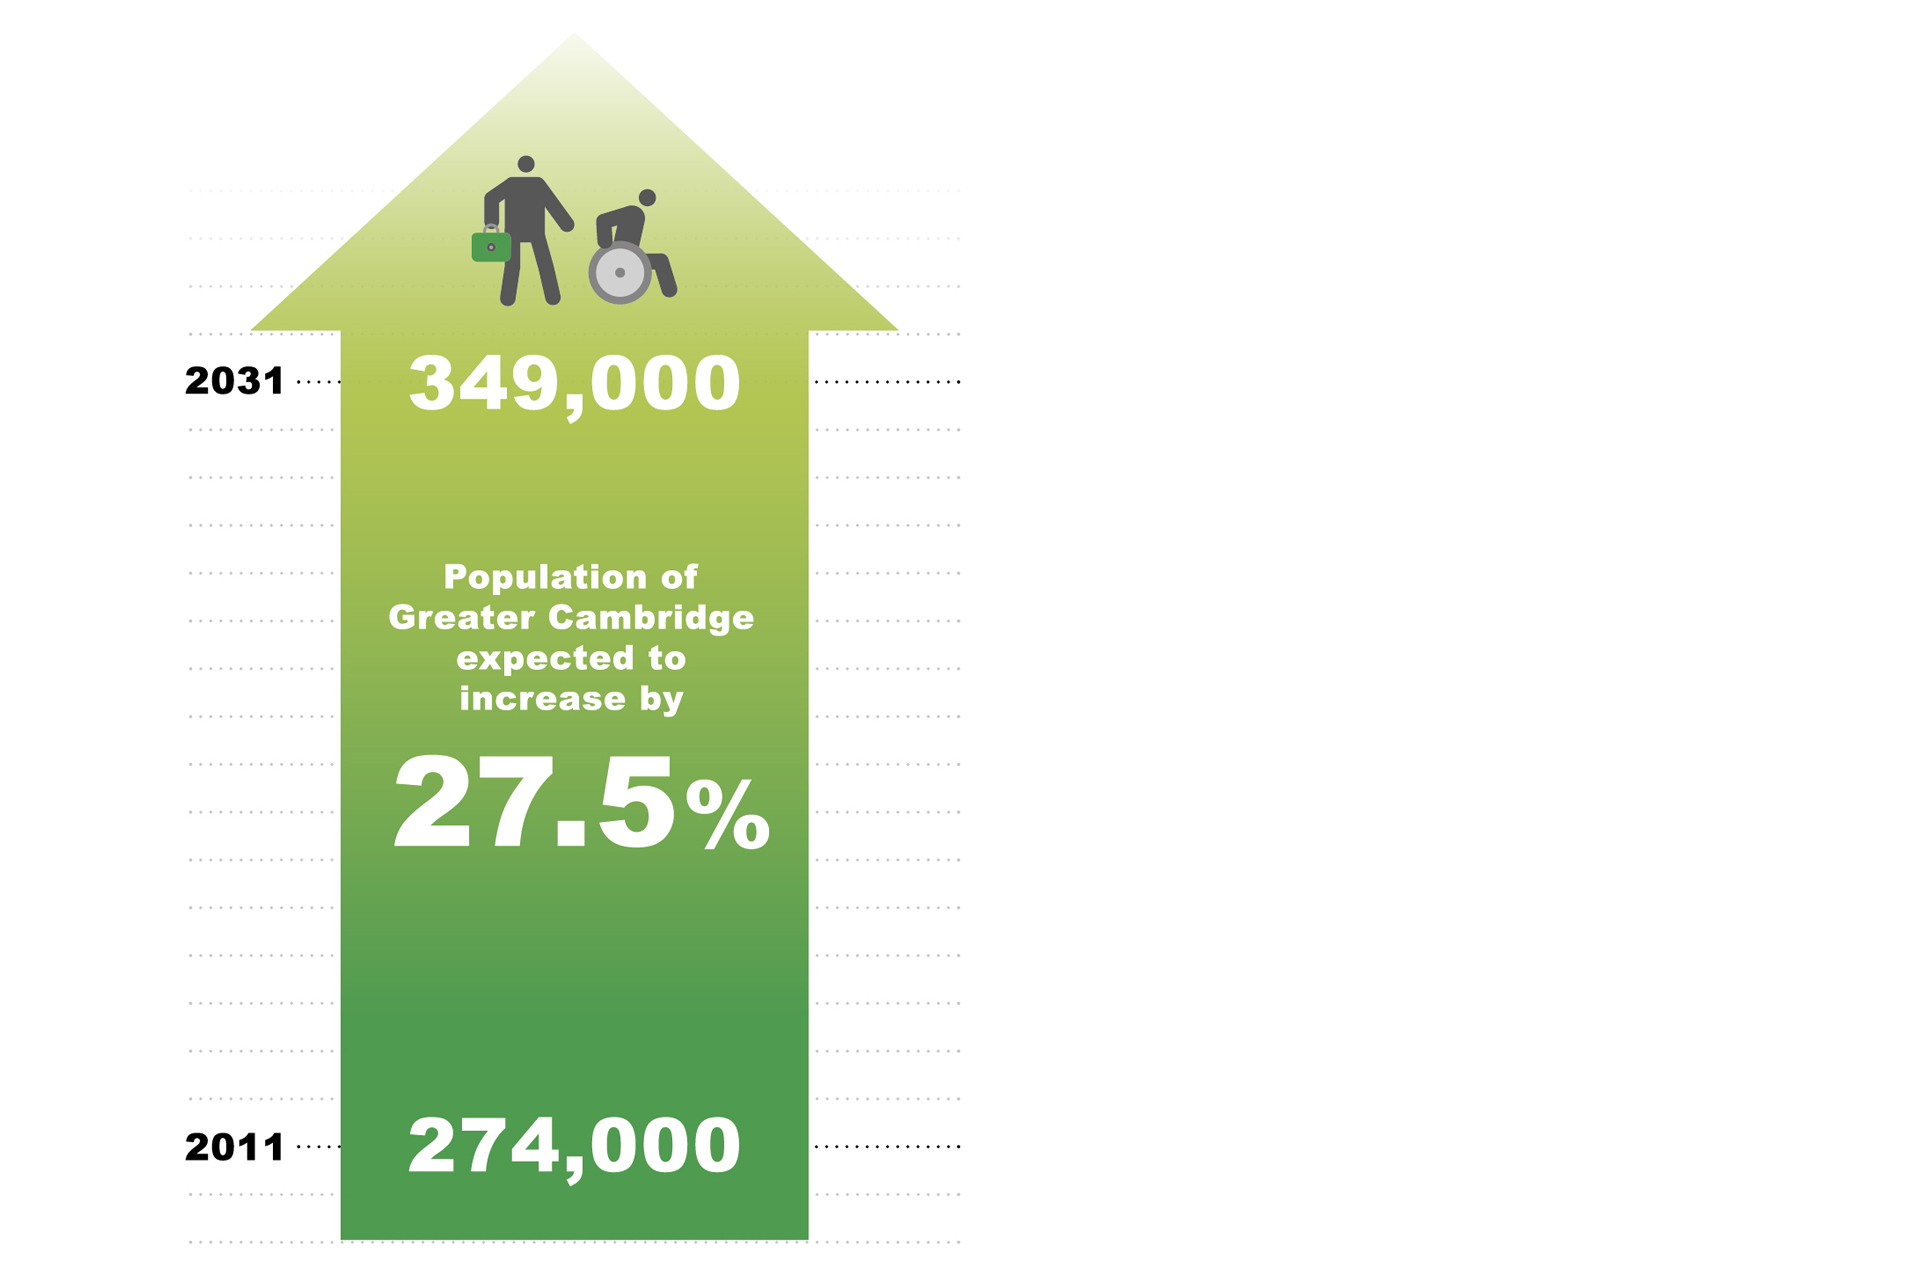 Infographic showing population of Greater Cambridge was 273,740 in 2011 people and that it is expected to grow by around 27.5% to 349,080 by 2031, based on current plans